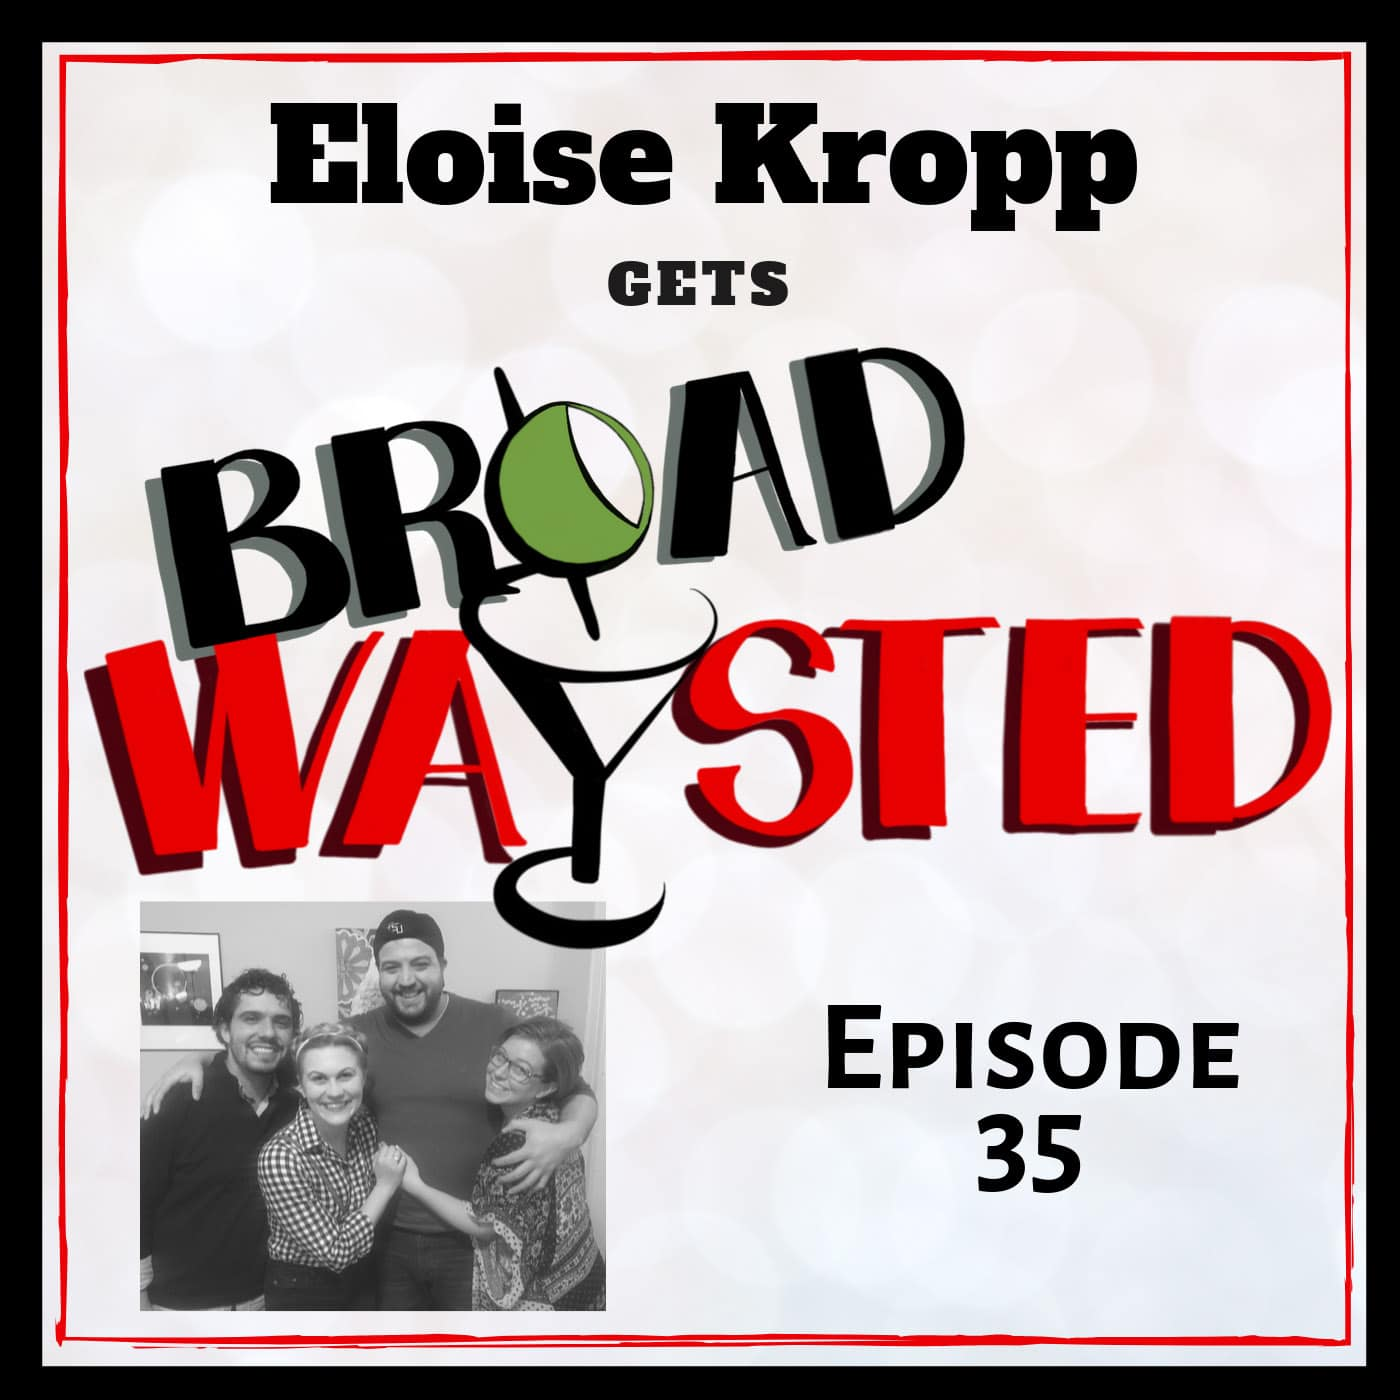 Broadwaysted Ep 35 Eloise Kropp